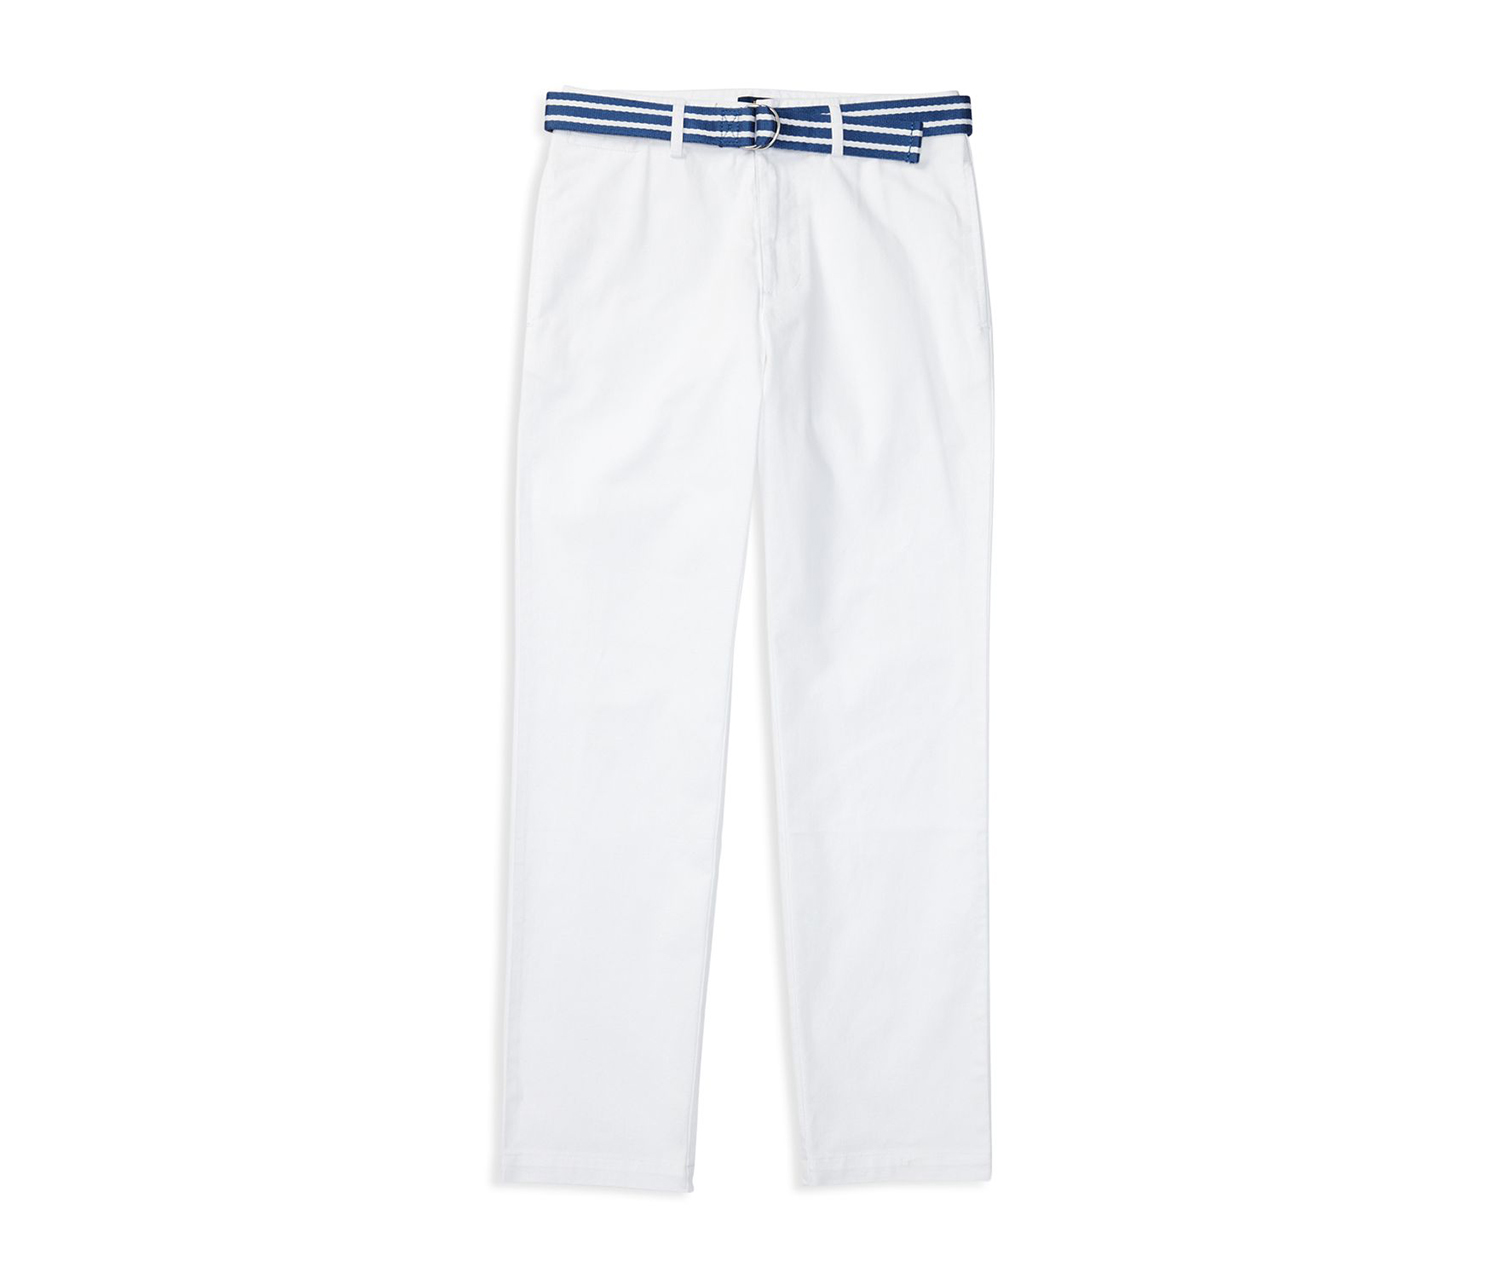 Ralph Lauren Twill Boy's Pants, White